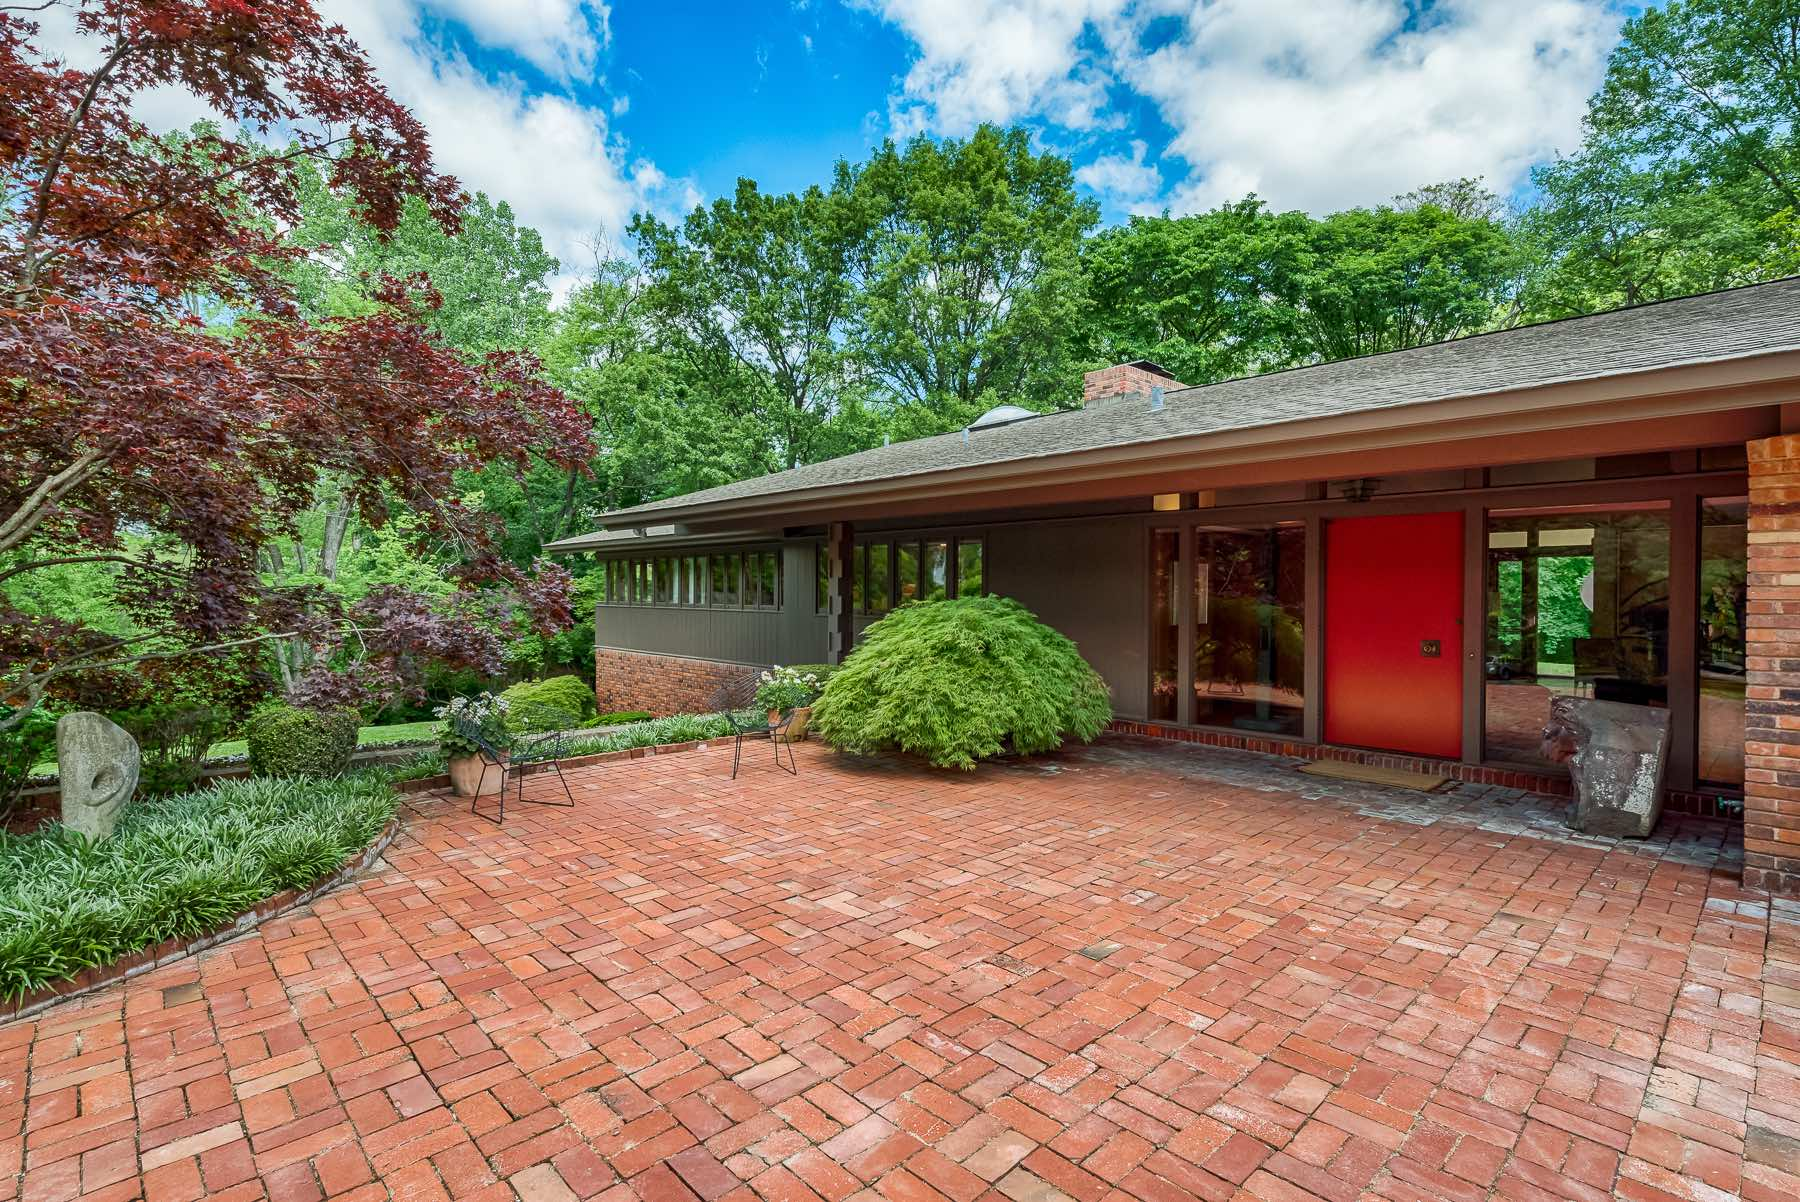 Photographs of a home on Winding Brook Lane Road in Ladue, Missouri for Dielmann Sotheby's International Realty agent Ted Wight